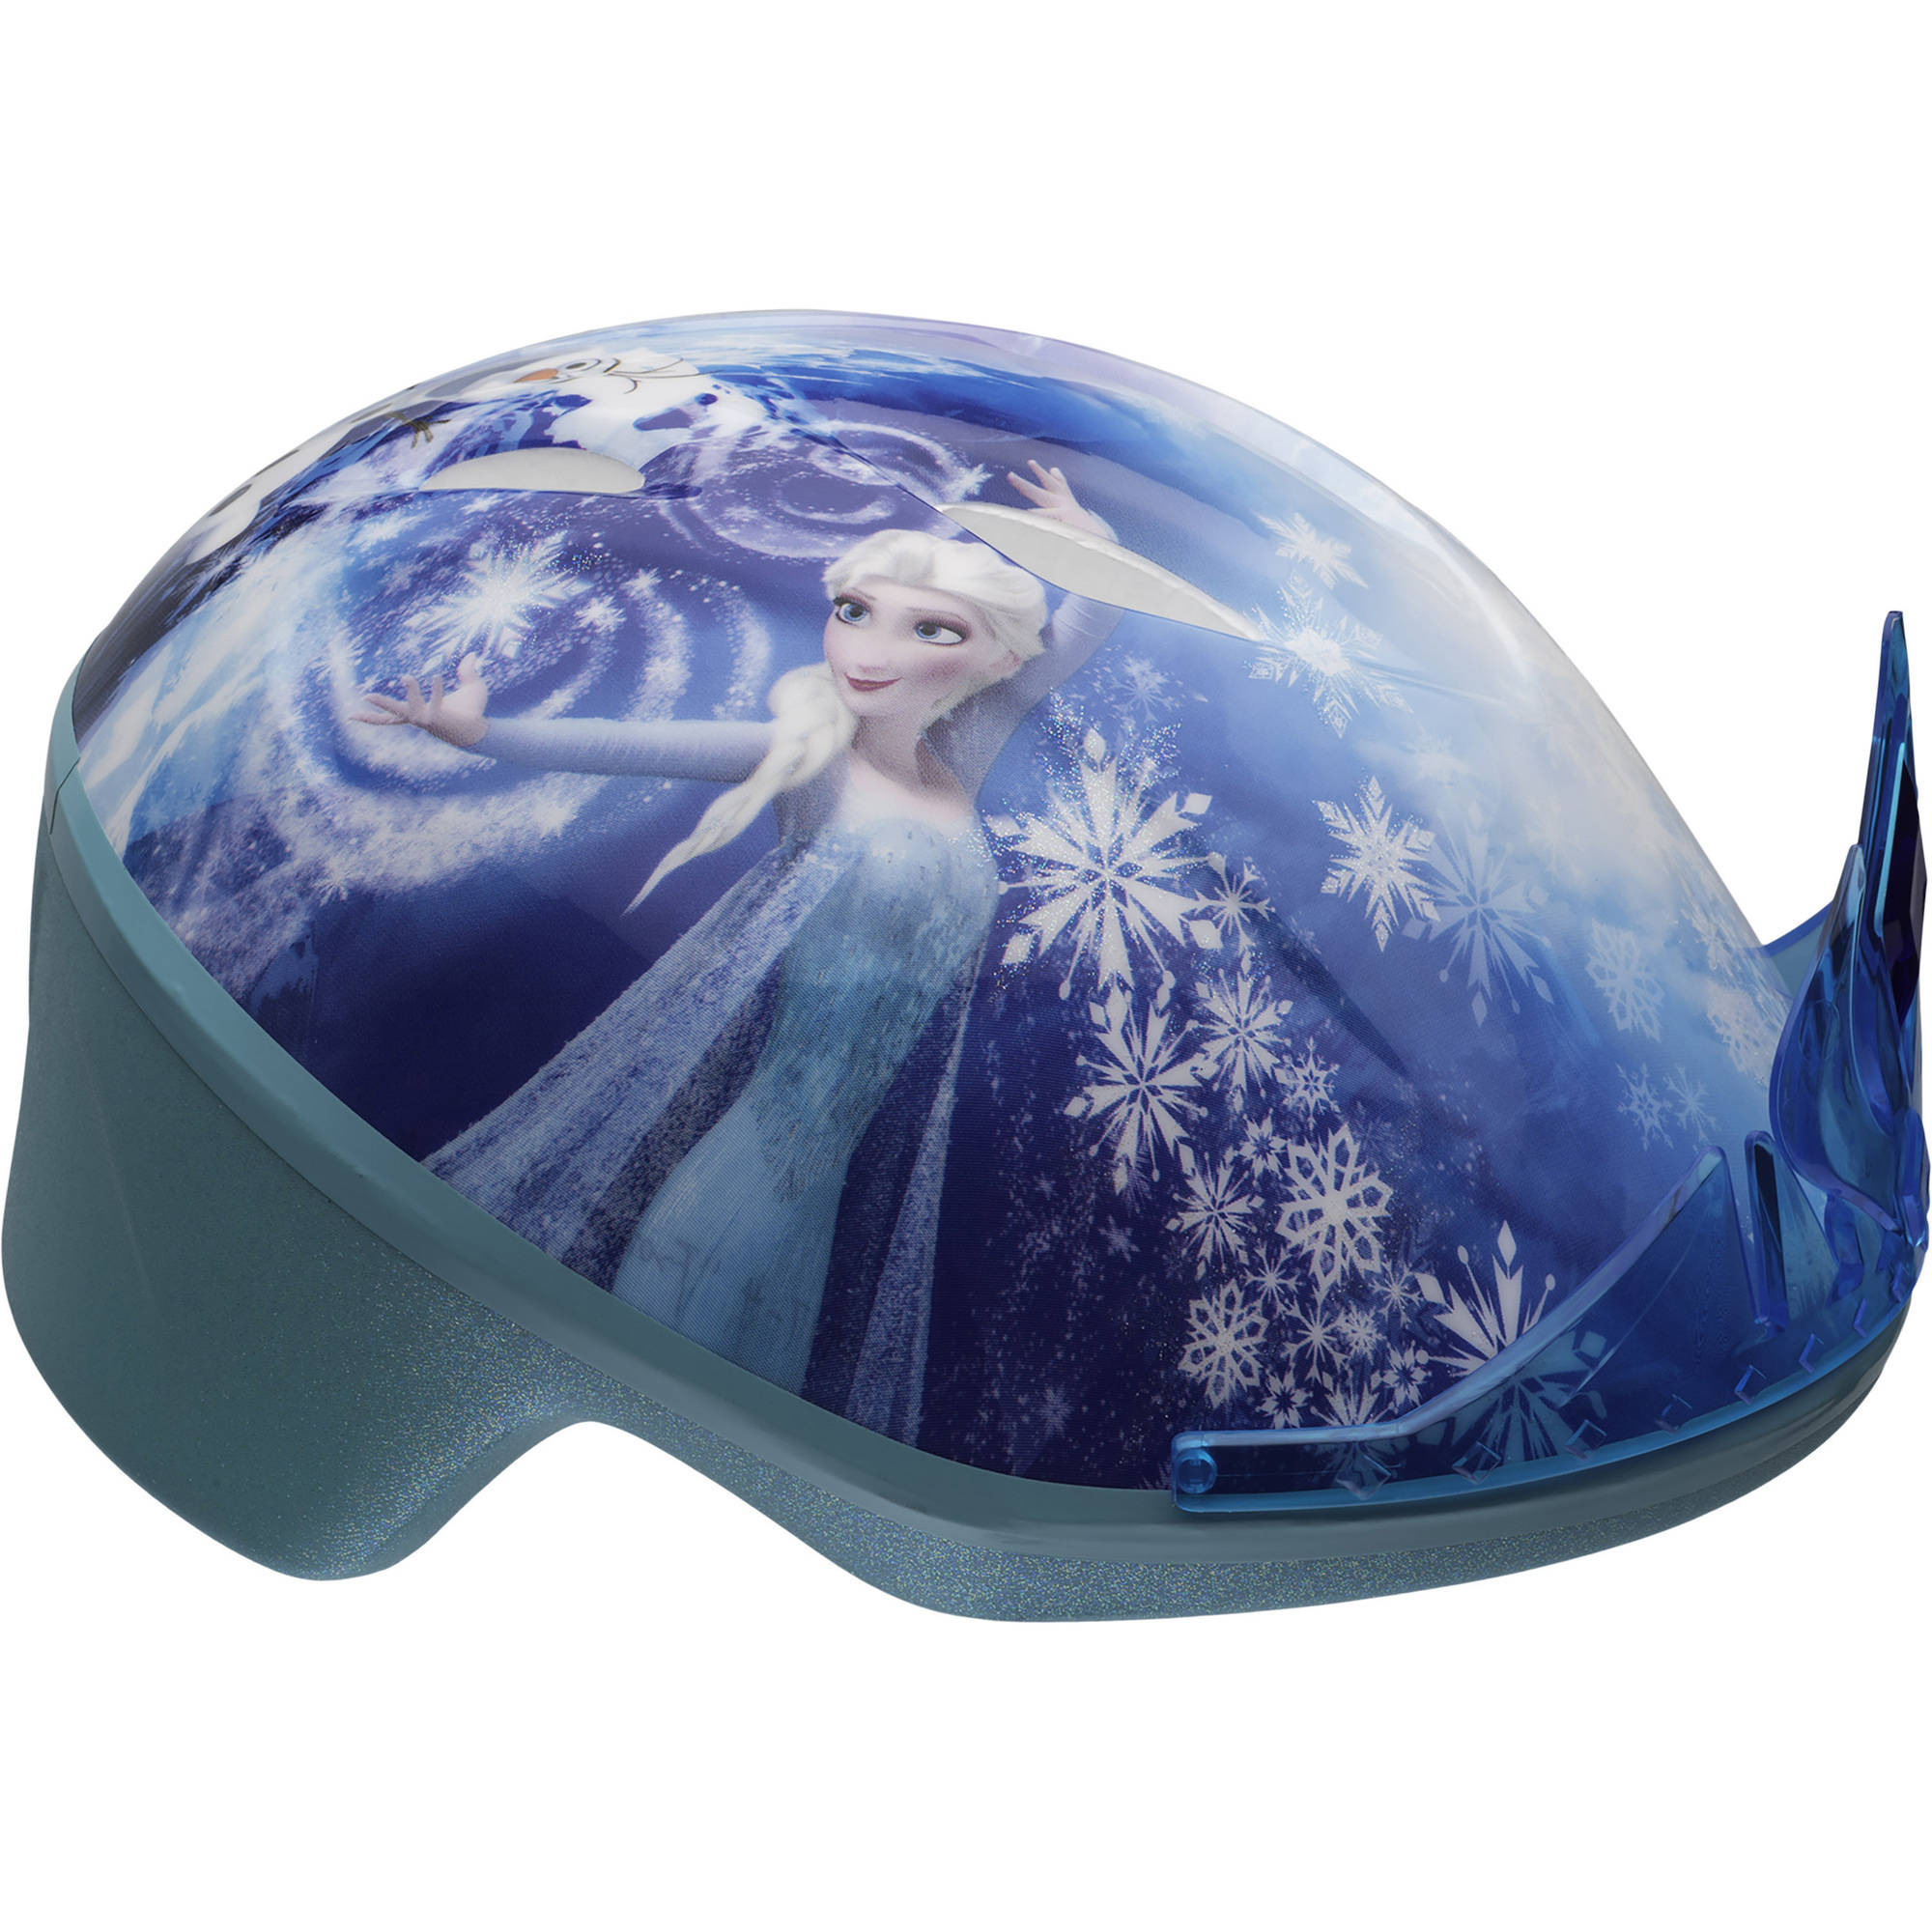 Bell 7068215 Disney Frozen 3D Tiara Toddler Bike Helmet, Blue